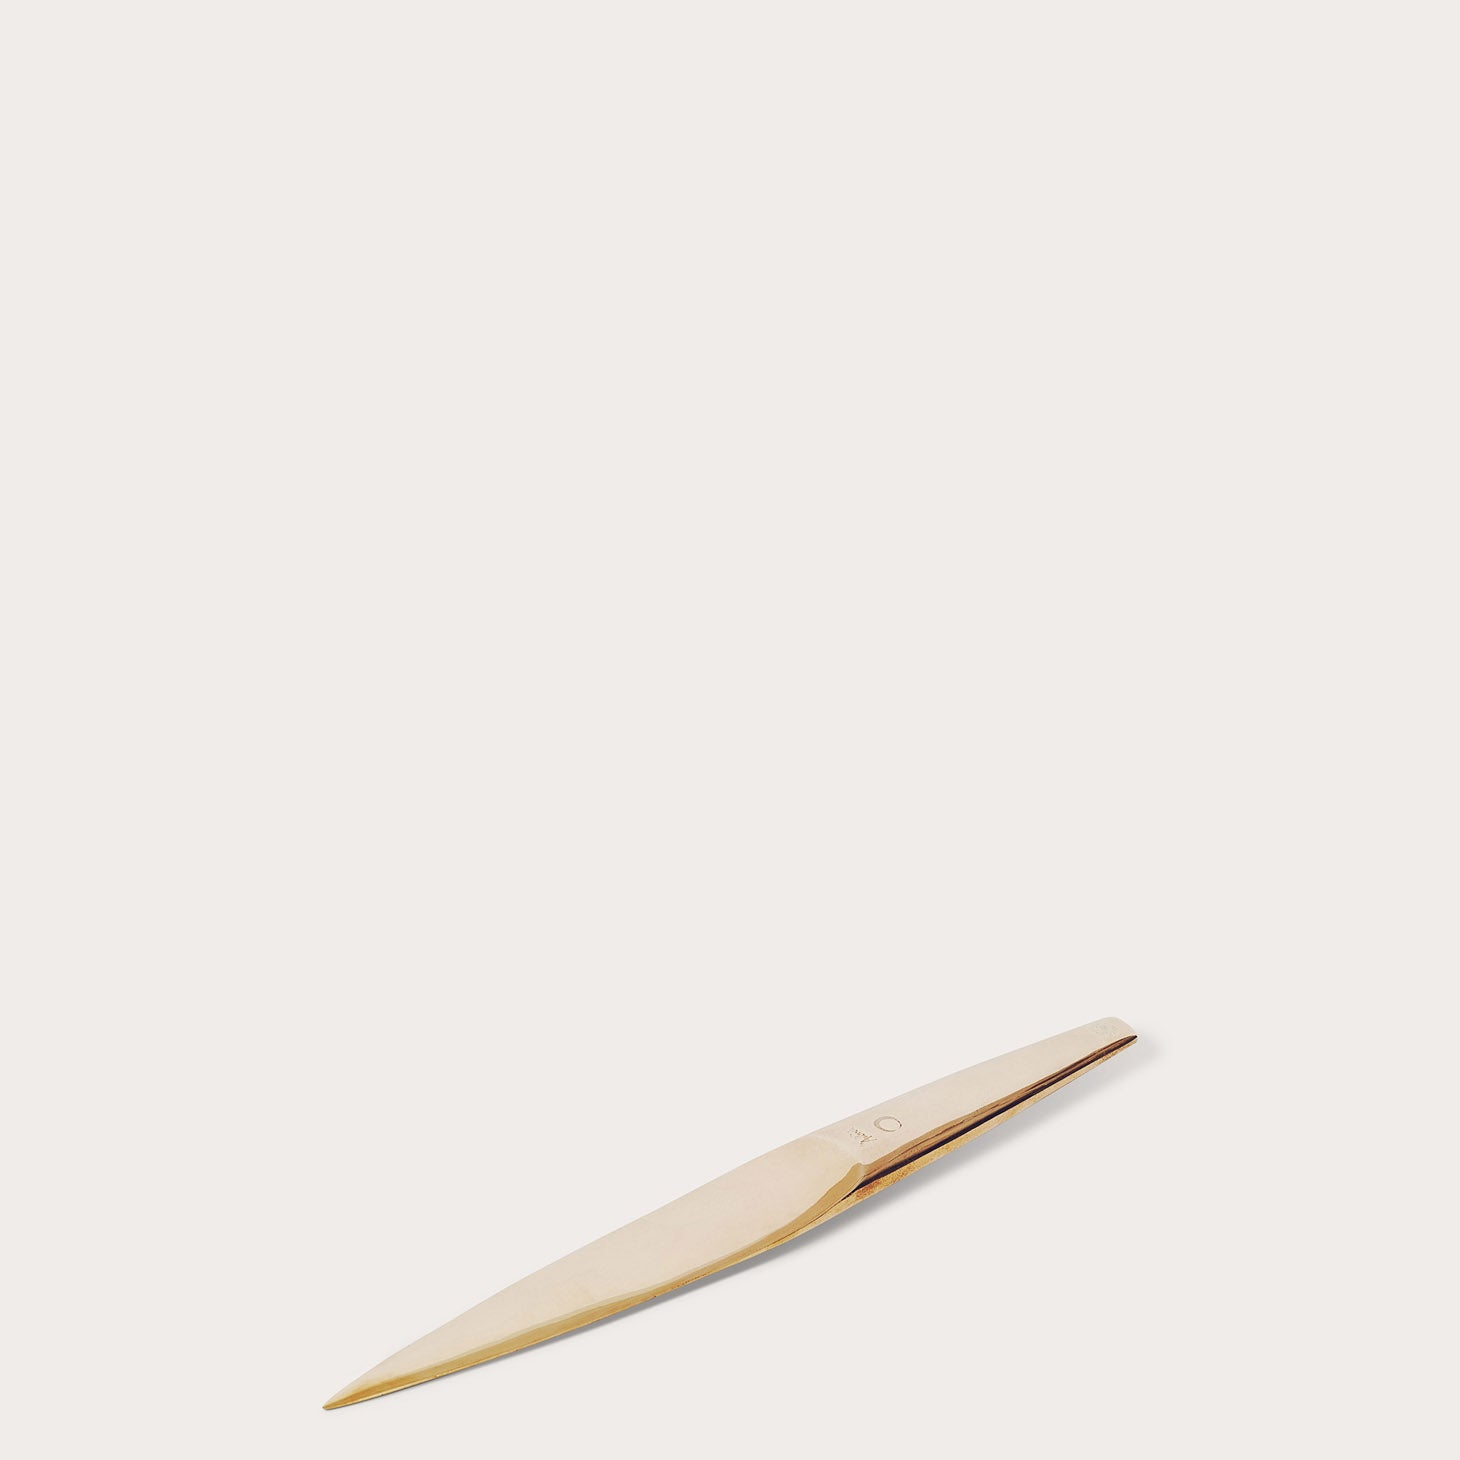 Letter Opener Accessories Carl Auböck Designer Furniture Sku: 772-100-10016